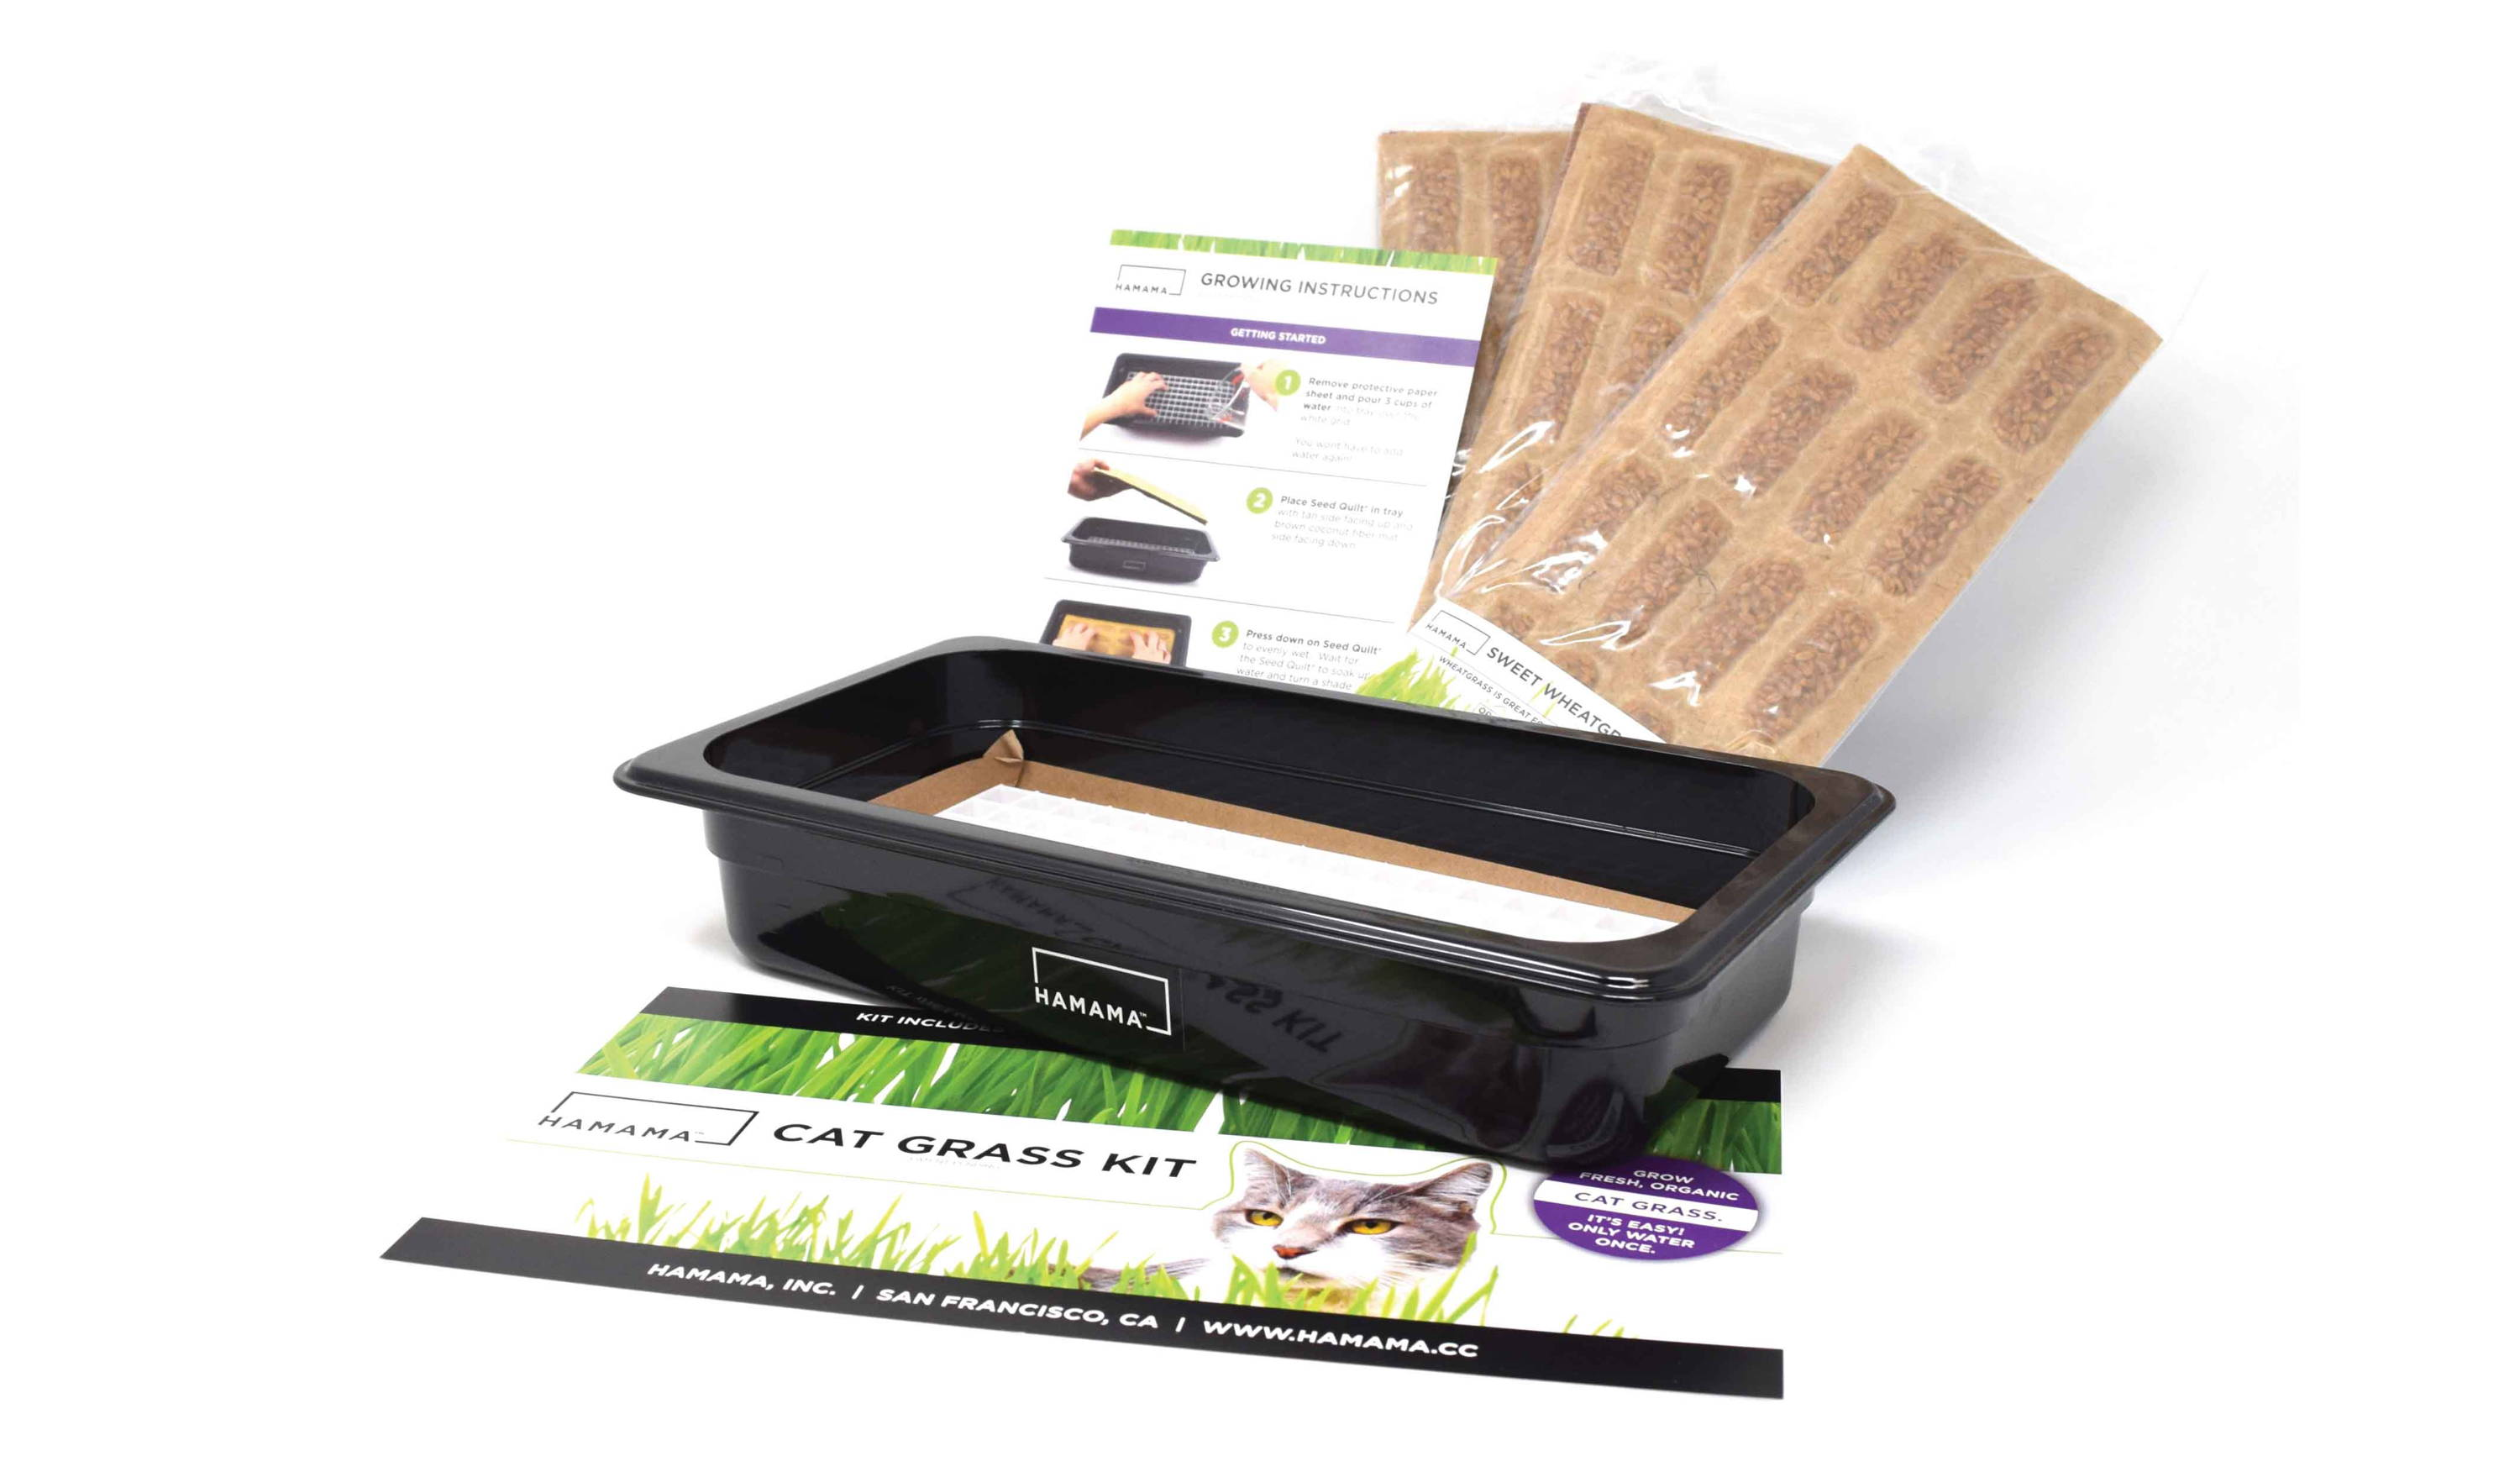 Cat grass kit for growing organic cat grass at home.  Includes grow tray, instructions, and three cat grass wheatgrass Seed Quilts